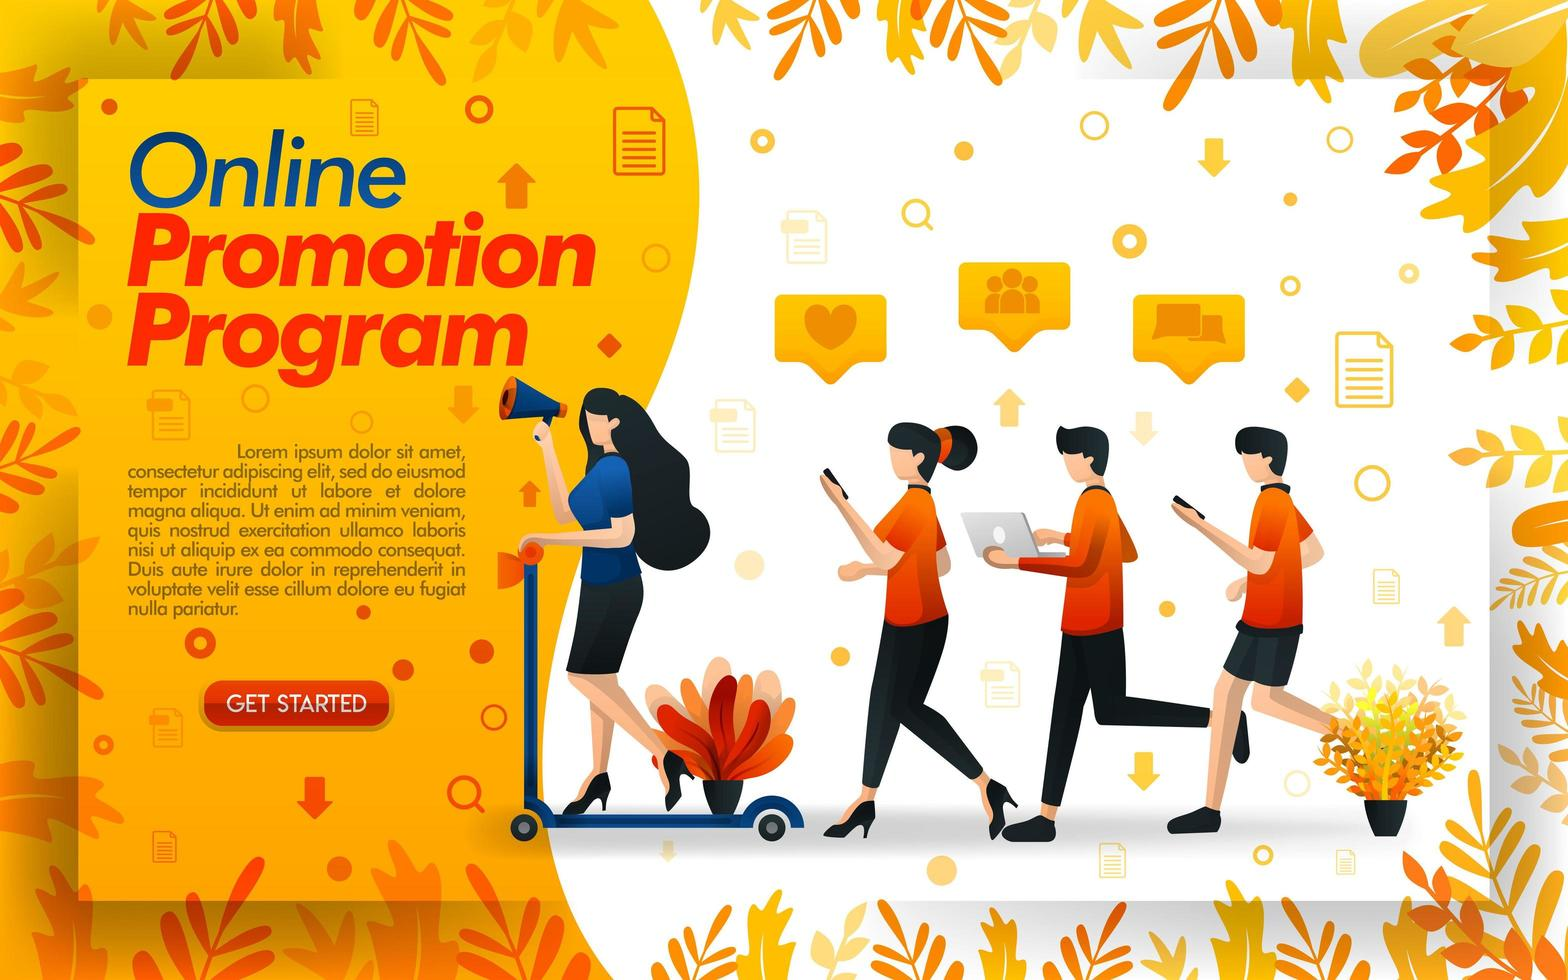 People running to reach sales targets, women who ride a scooter to make a promotion program a success, refer a friend concept, concept vector ilustration. can use for ui, mobile app, poster, banner